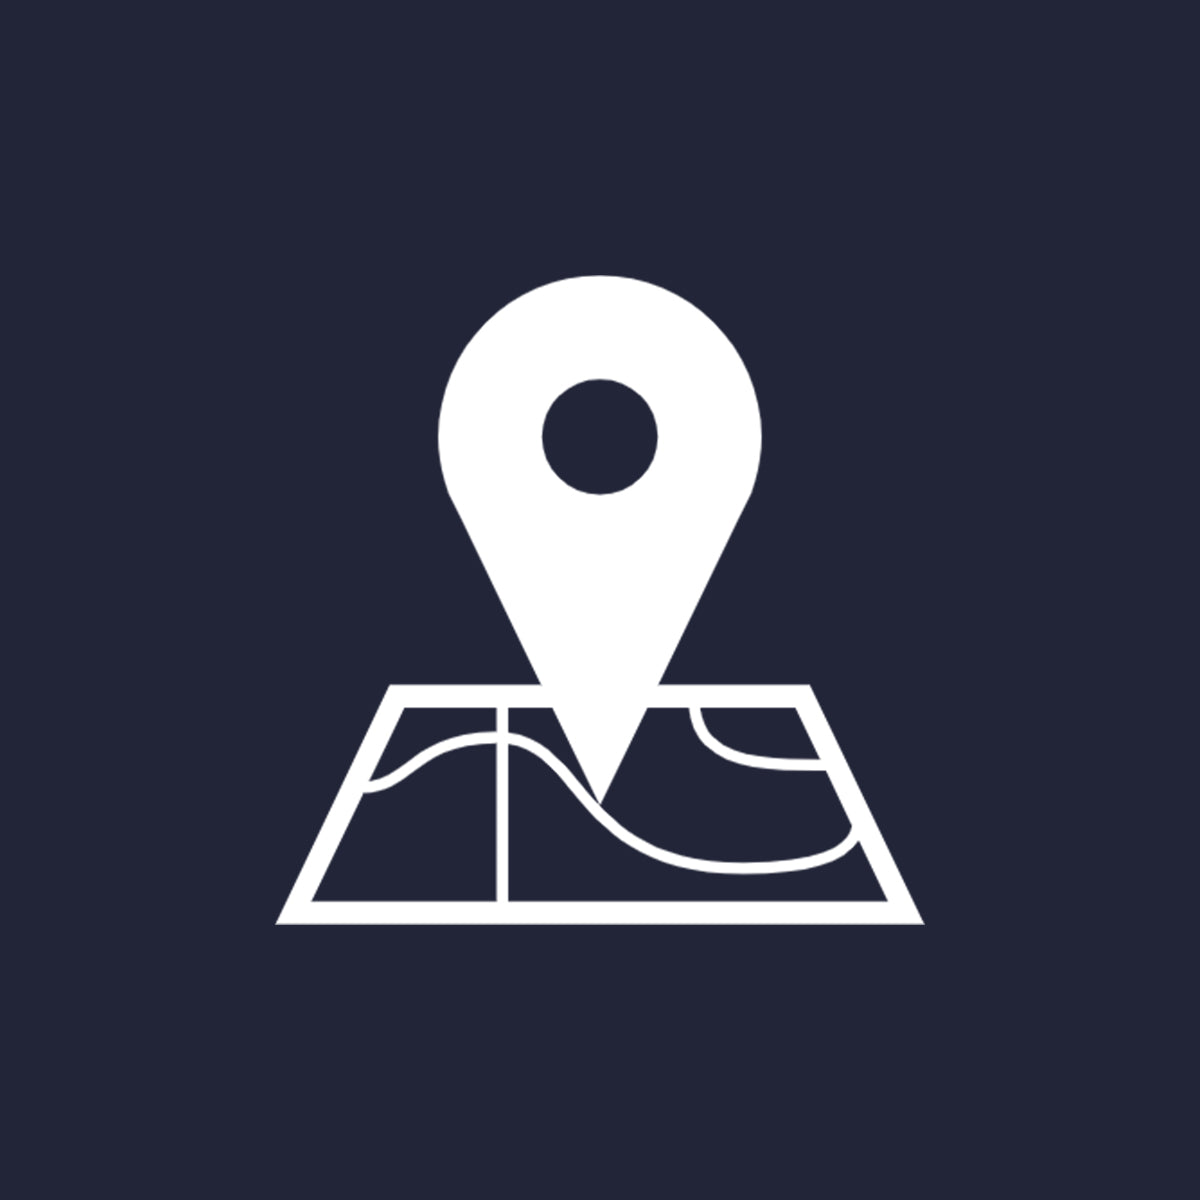 Hire Shopify Experts to integrate Zip Code Validator app into a Shopify store